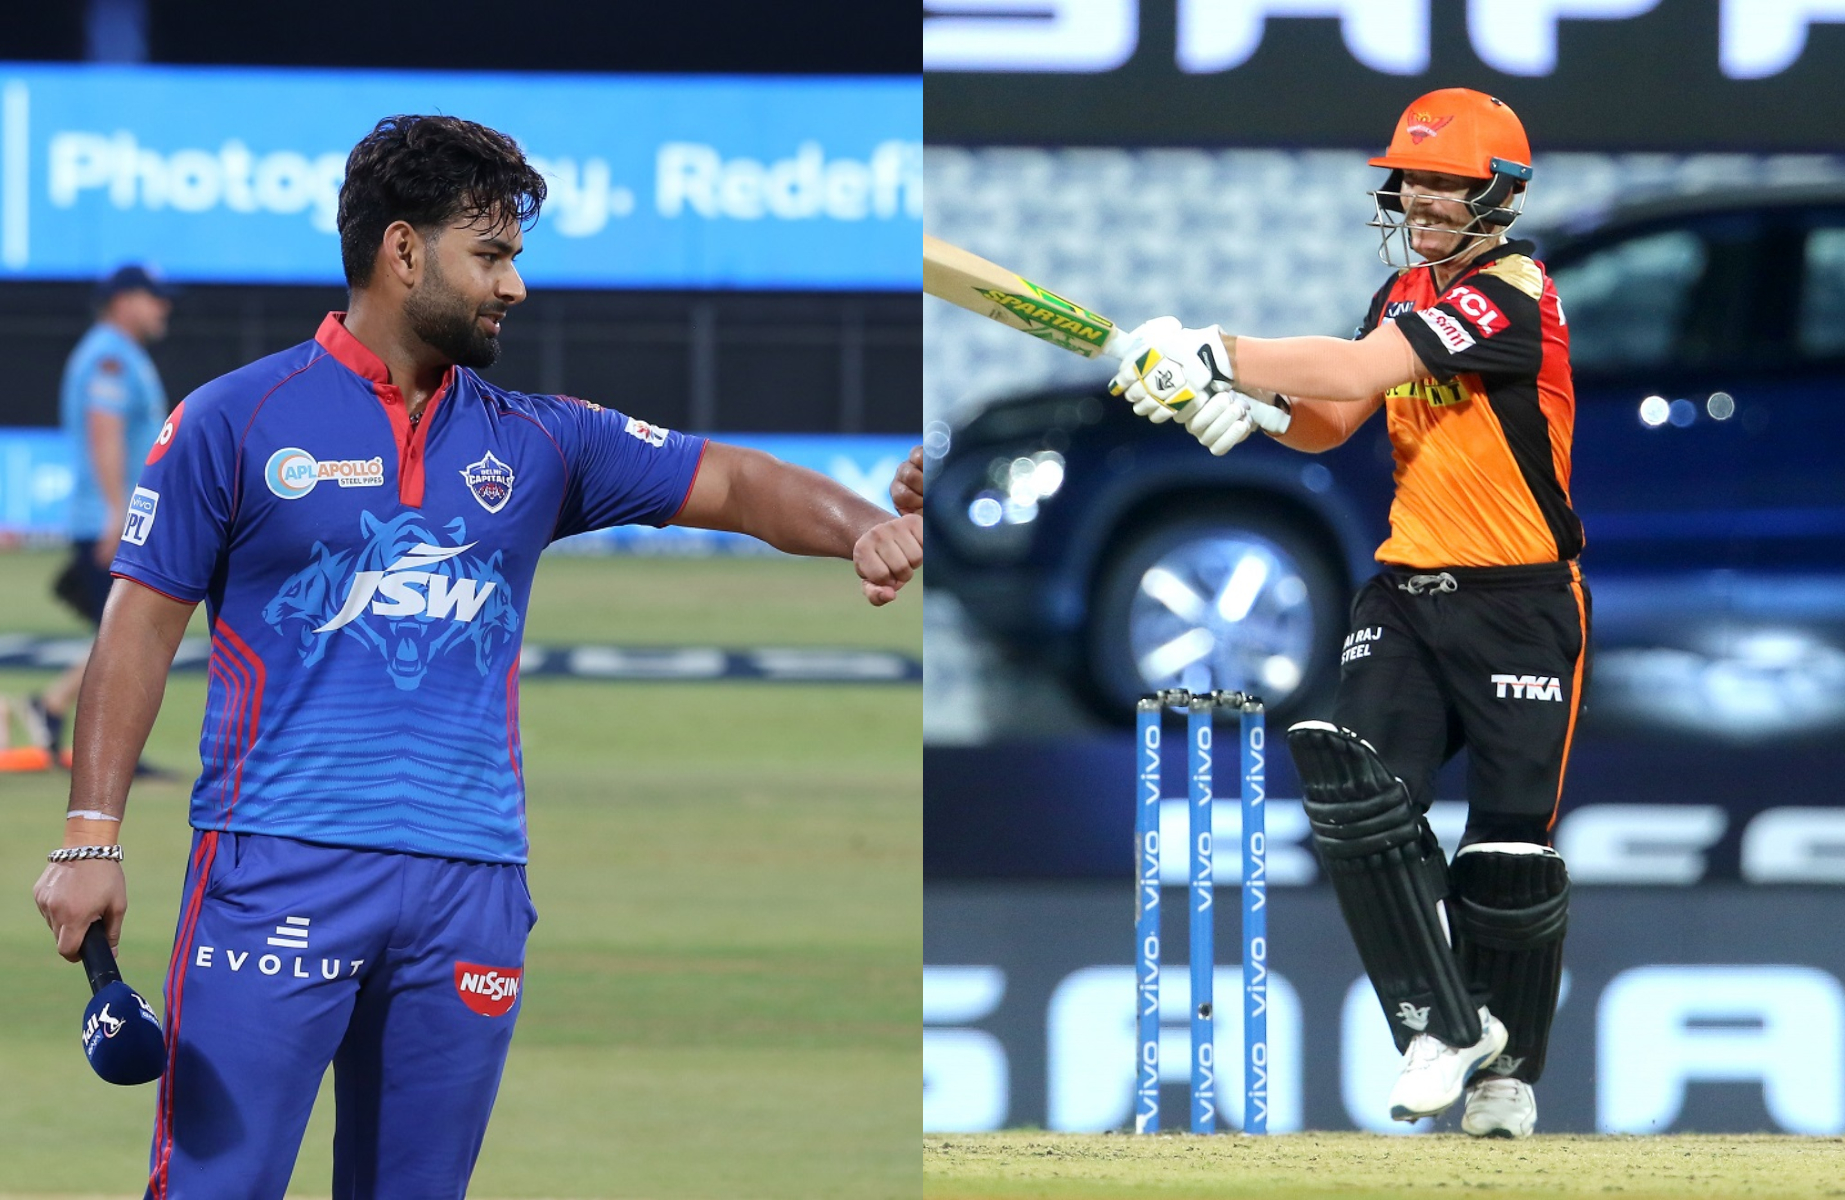 SRH have won just one game in IPL 2021 so far, while DC have won 3 matches thus far | IPL-BCCI